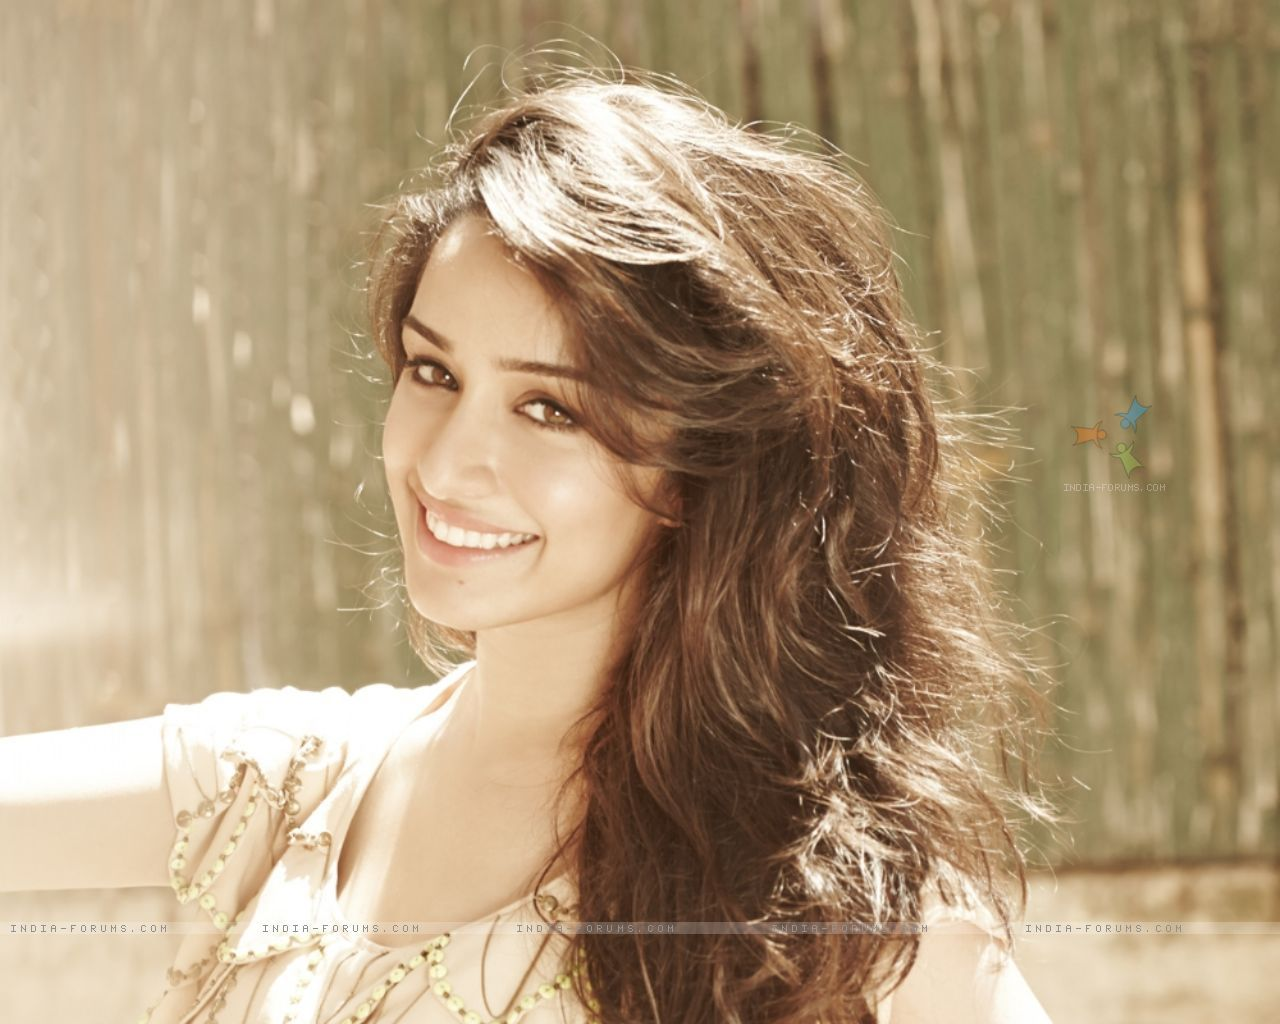 shraddha kapoor wallpapers | actress wallpapers | pinterest